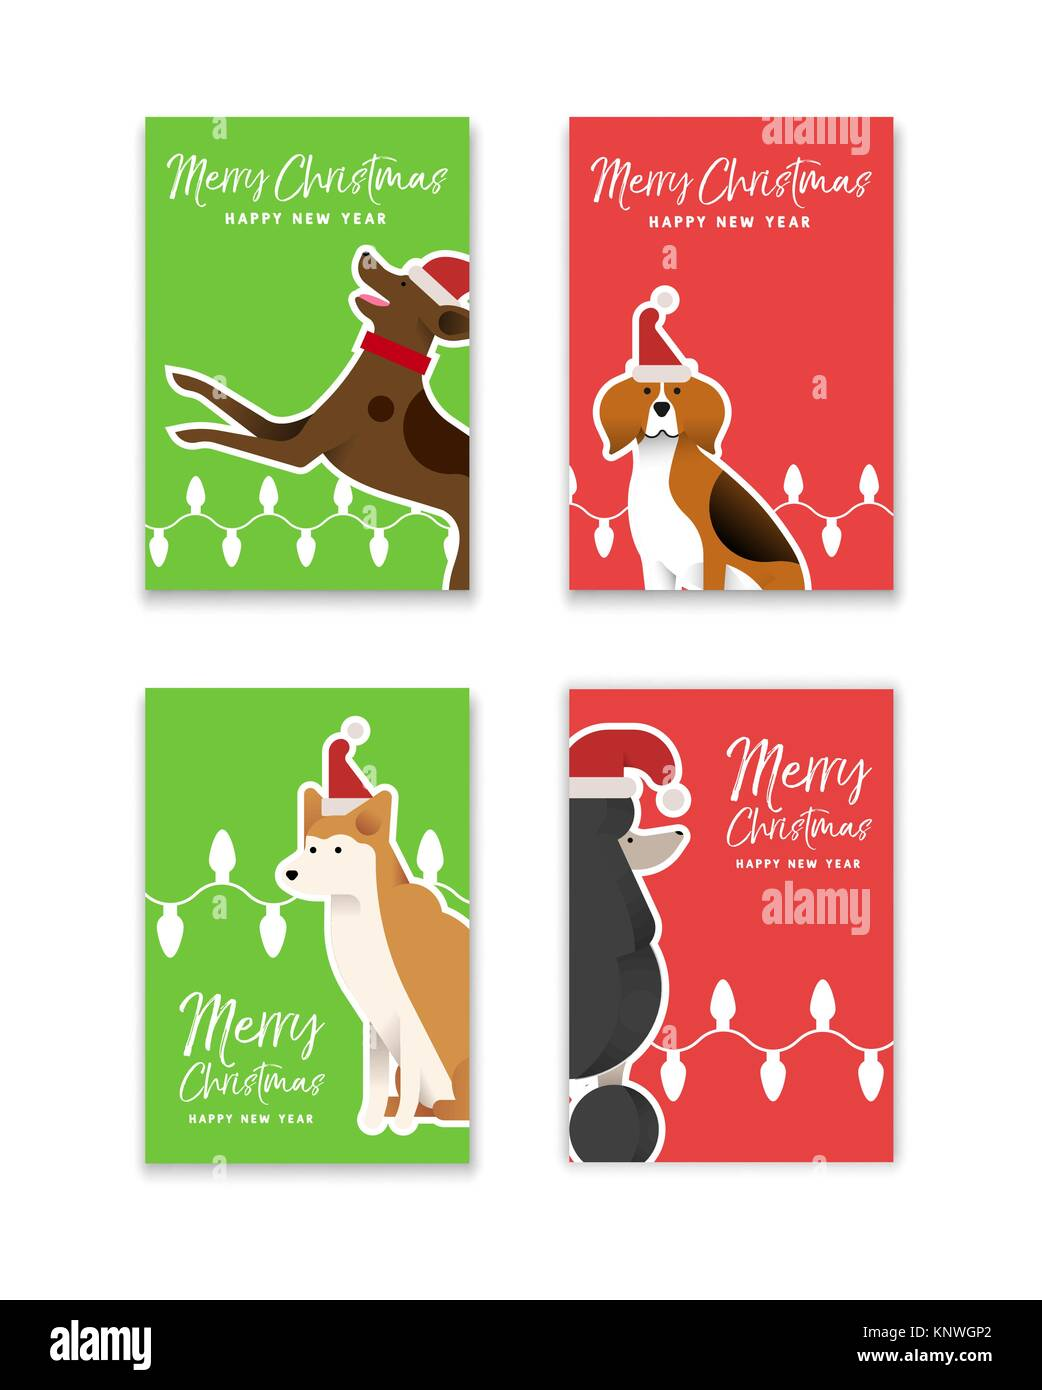 Merry christmas happy new year greeting card set with funny dog merry christmas happy new year greeting card set with funny dog illustrations in flat art style includes beagle shiba inu and poodle breeds eps10 v m4hsunfo